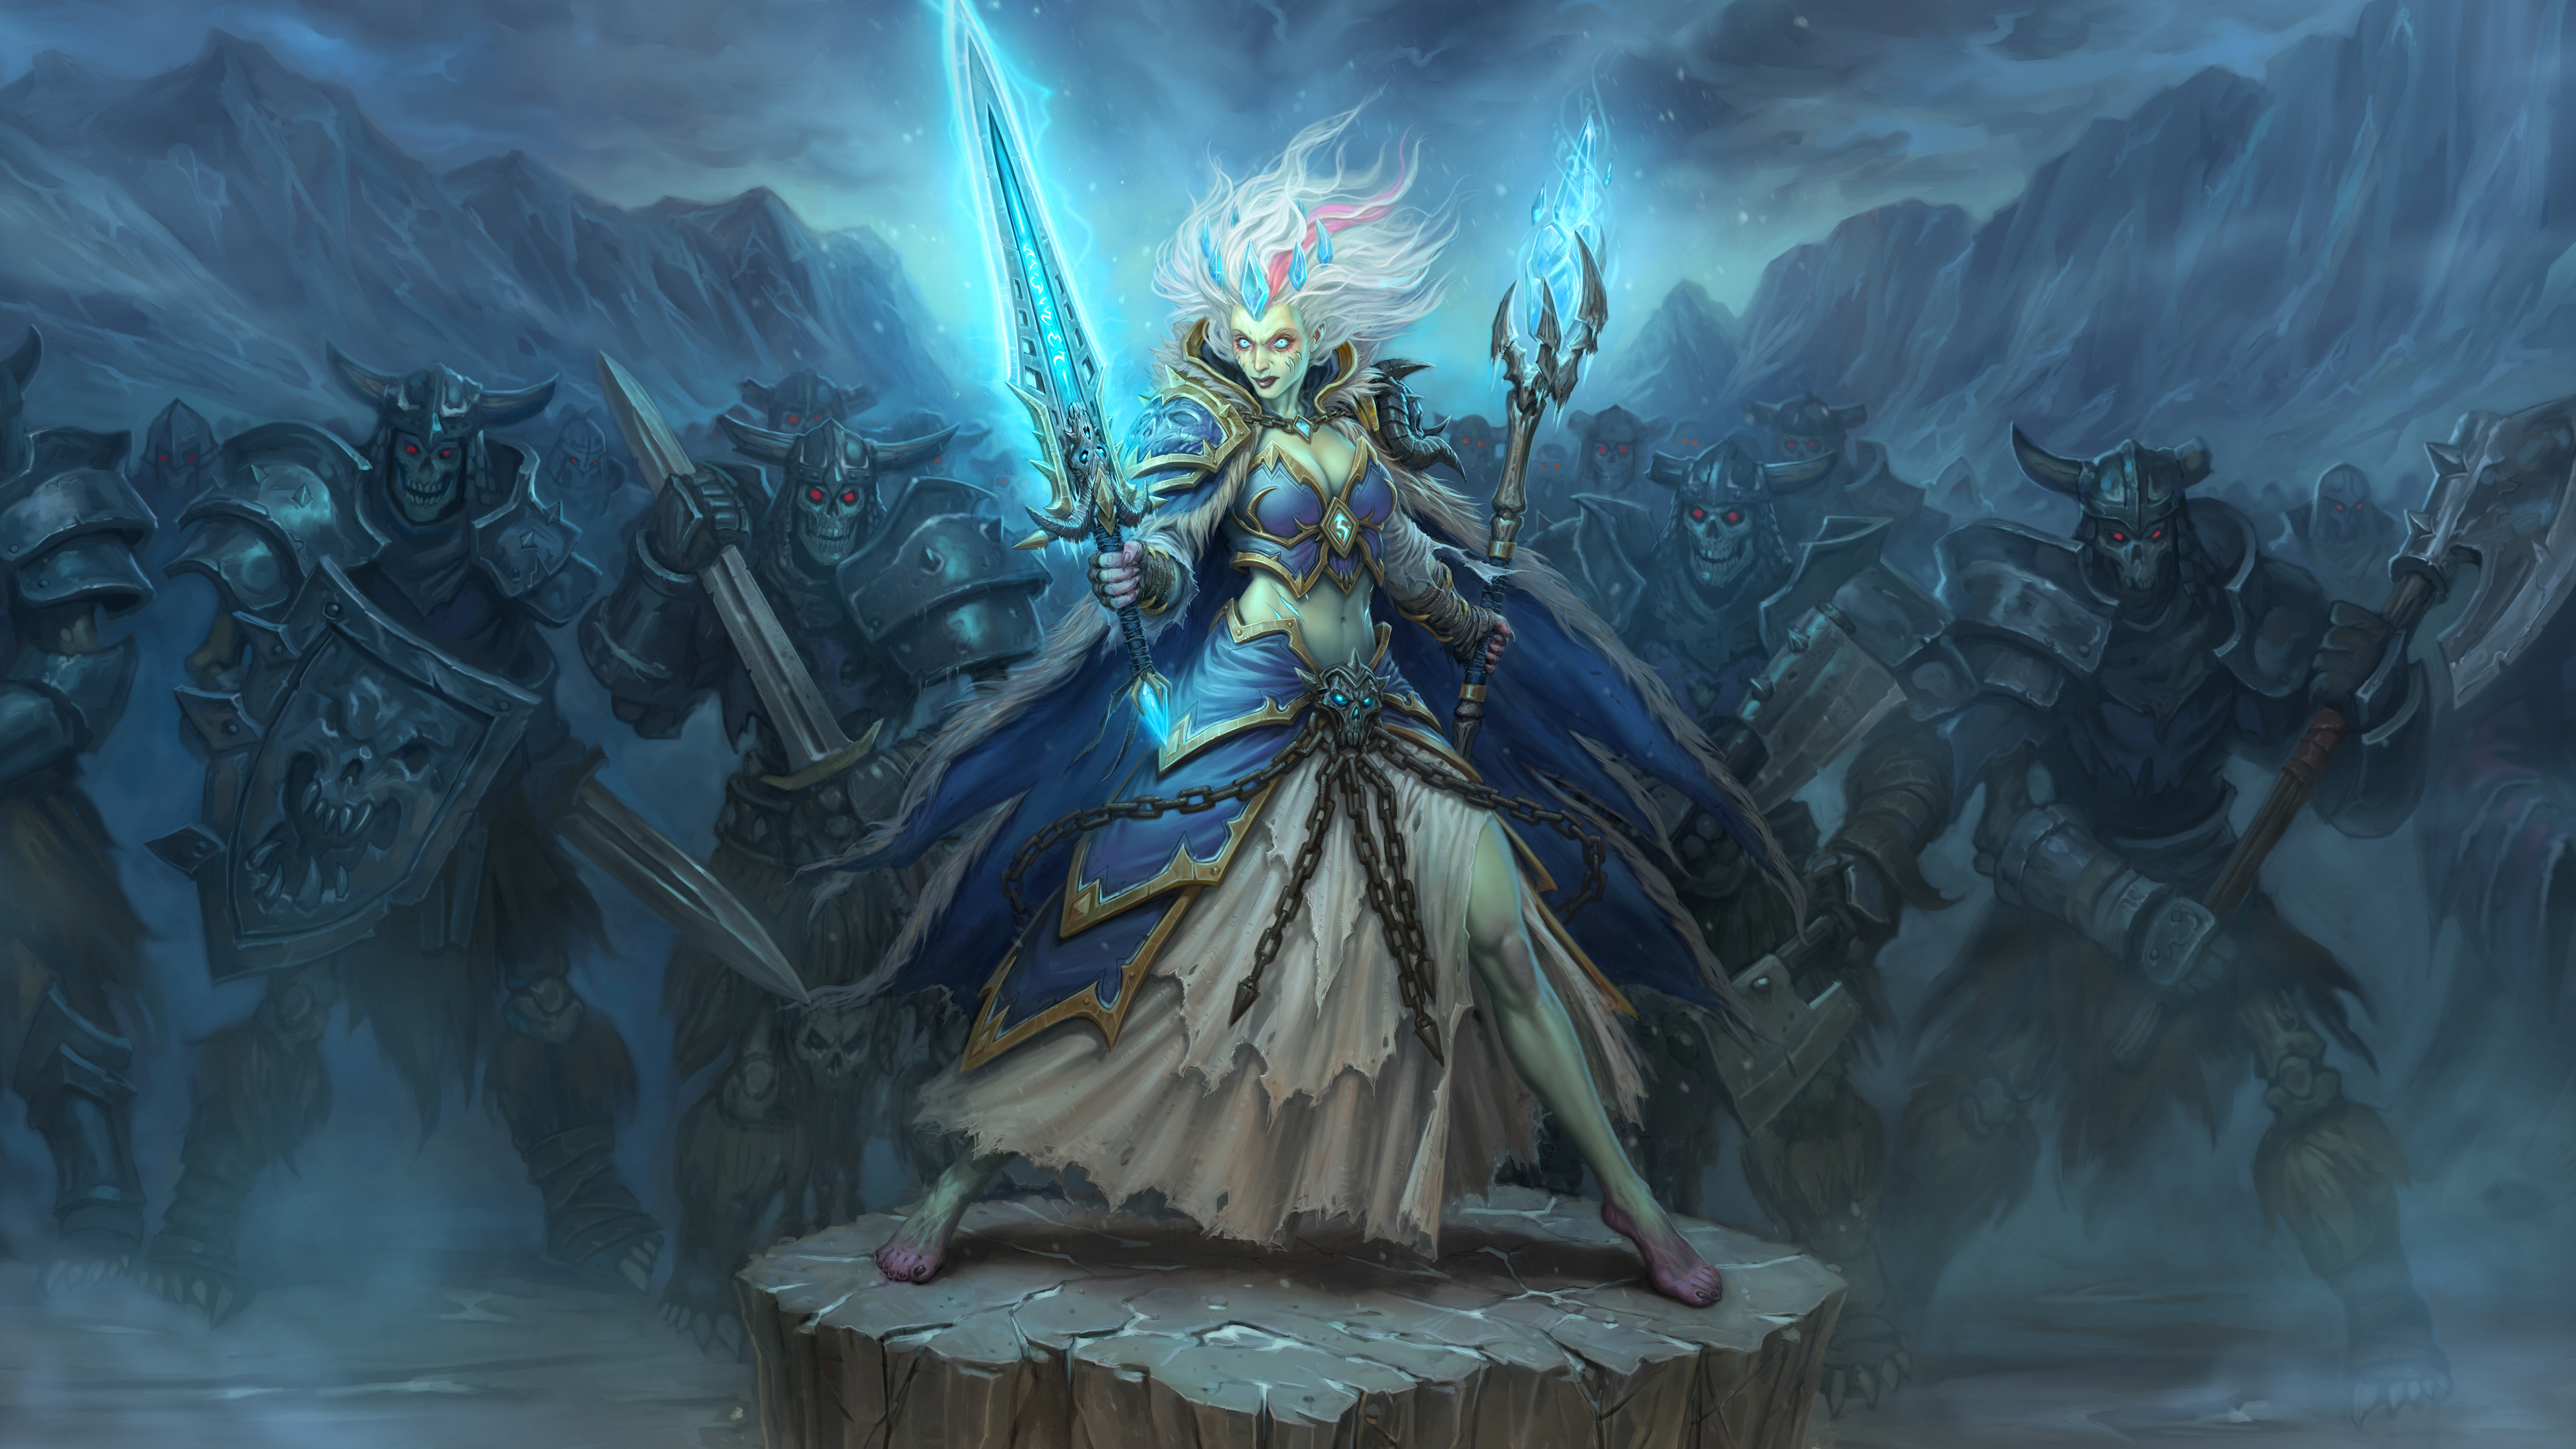 frost lich jaina hearthstone 2018 1538344000 - Frost Lich Jaina Hearthstone 2018 - hearthstone wallpapers, hd-wallpapers, games wallpapers, 5k wallpapers, 4k-wallpapers